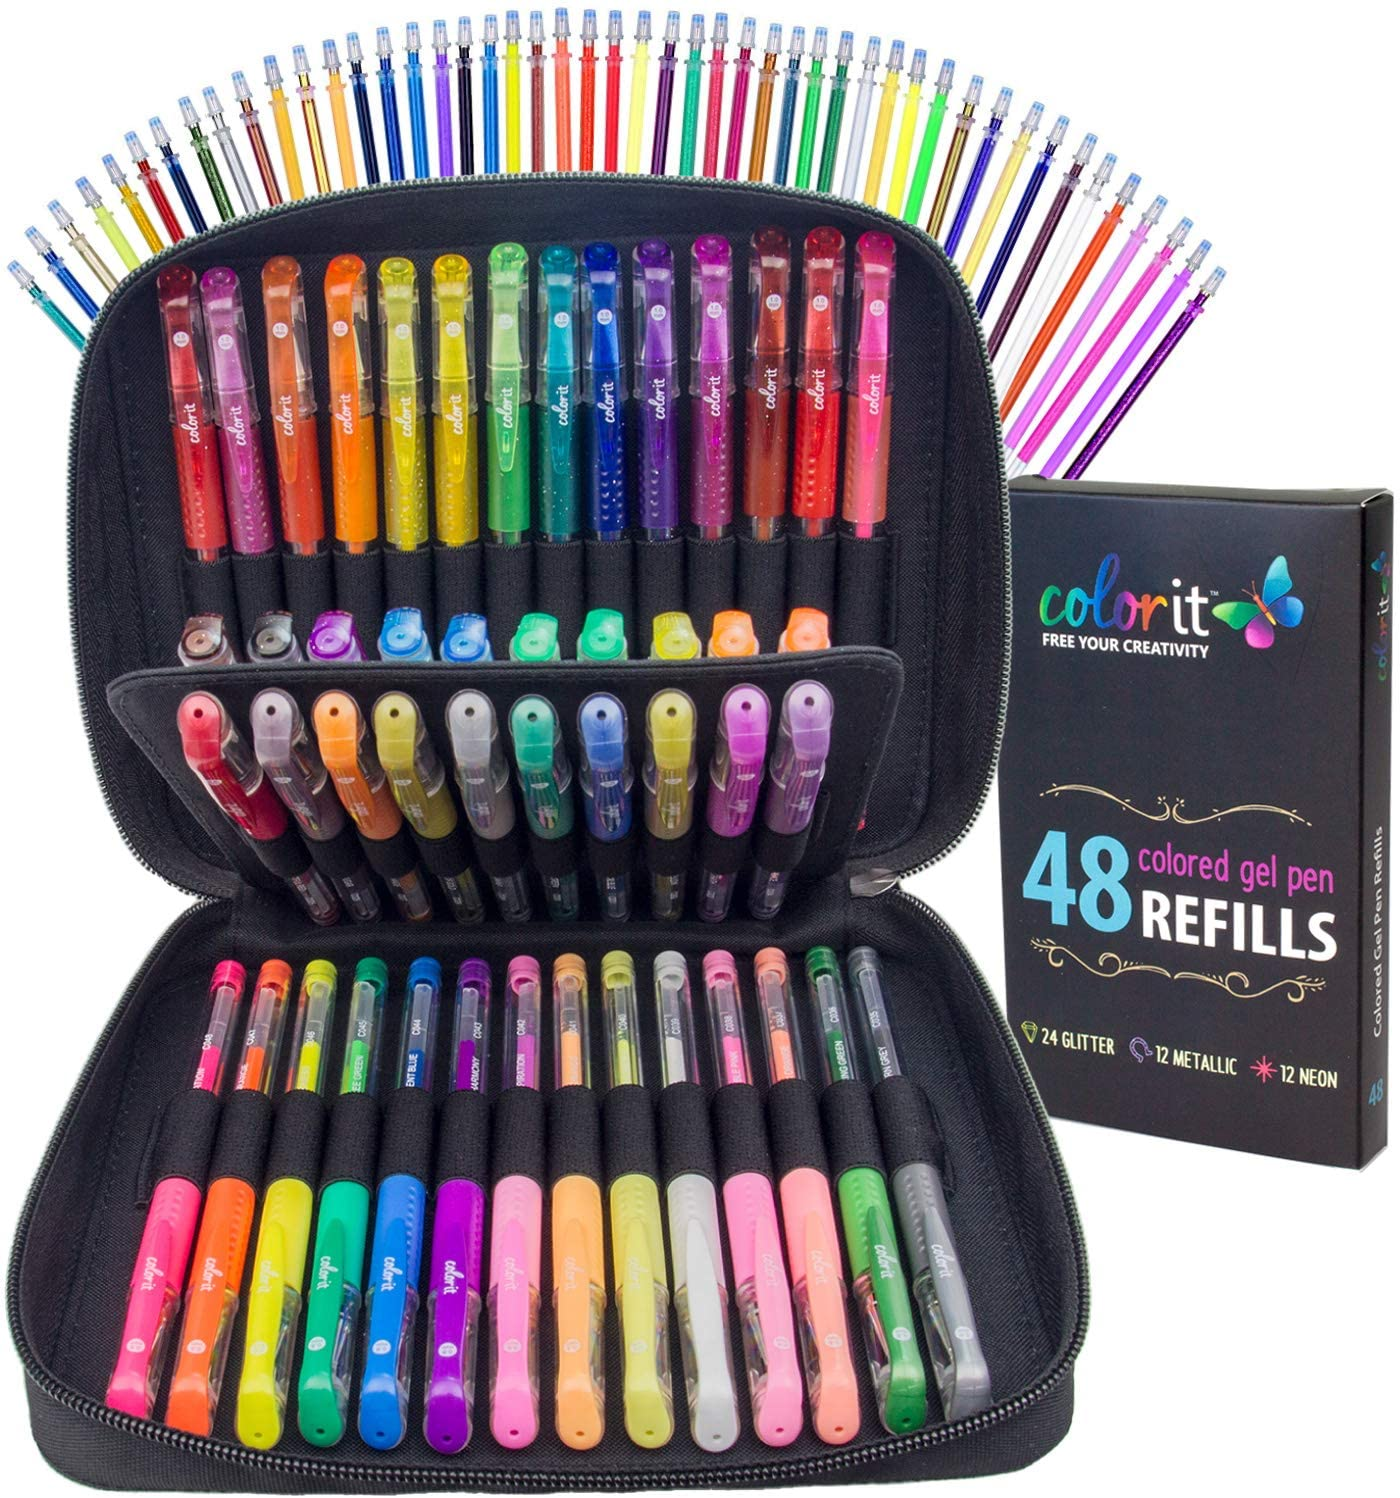 48 pens with refills